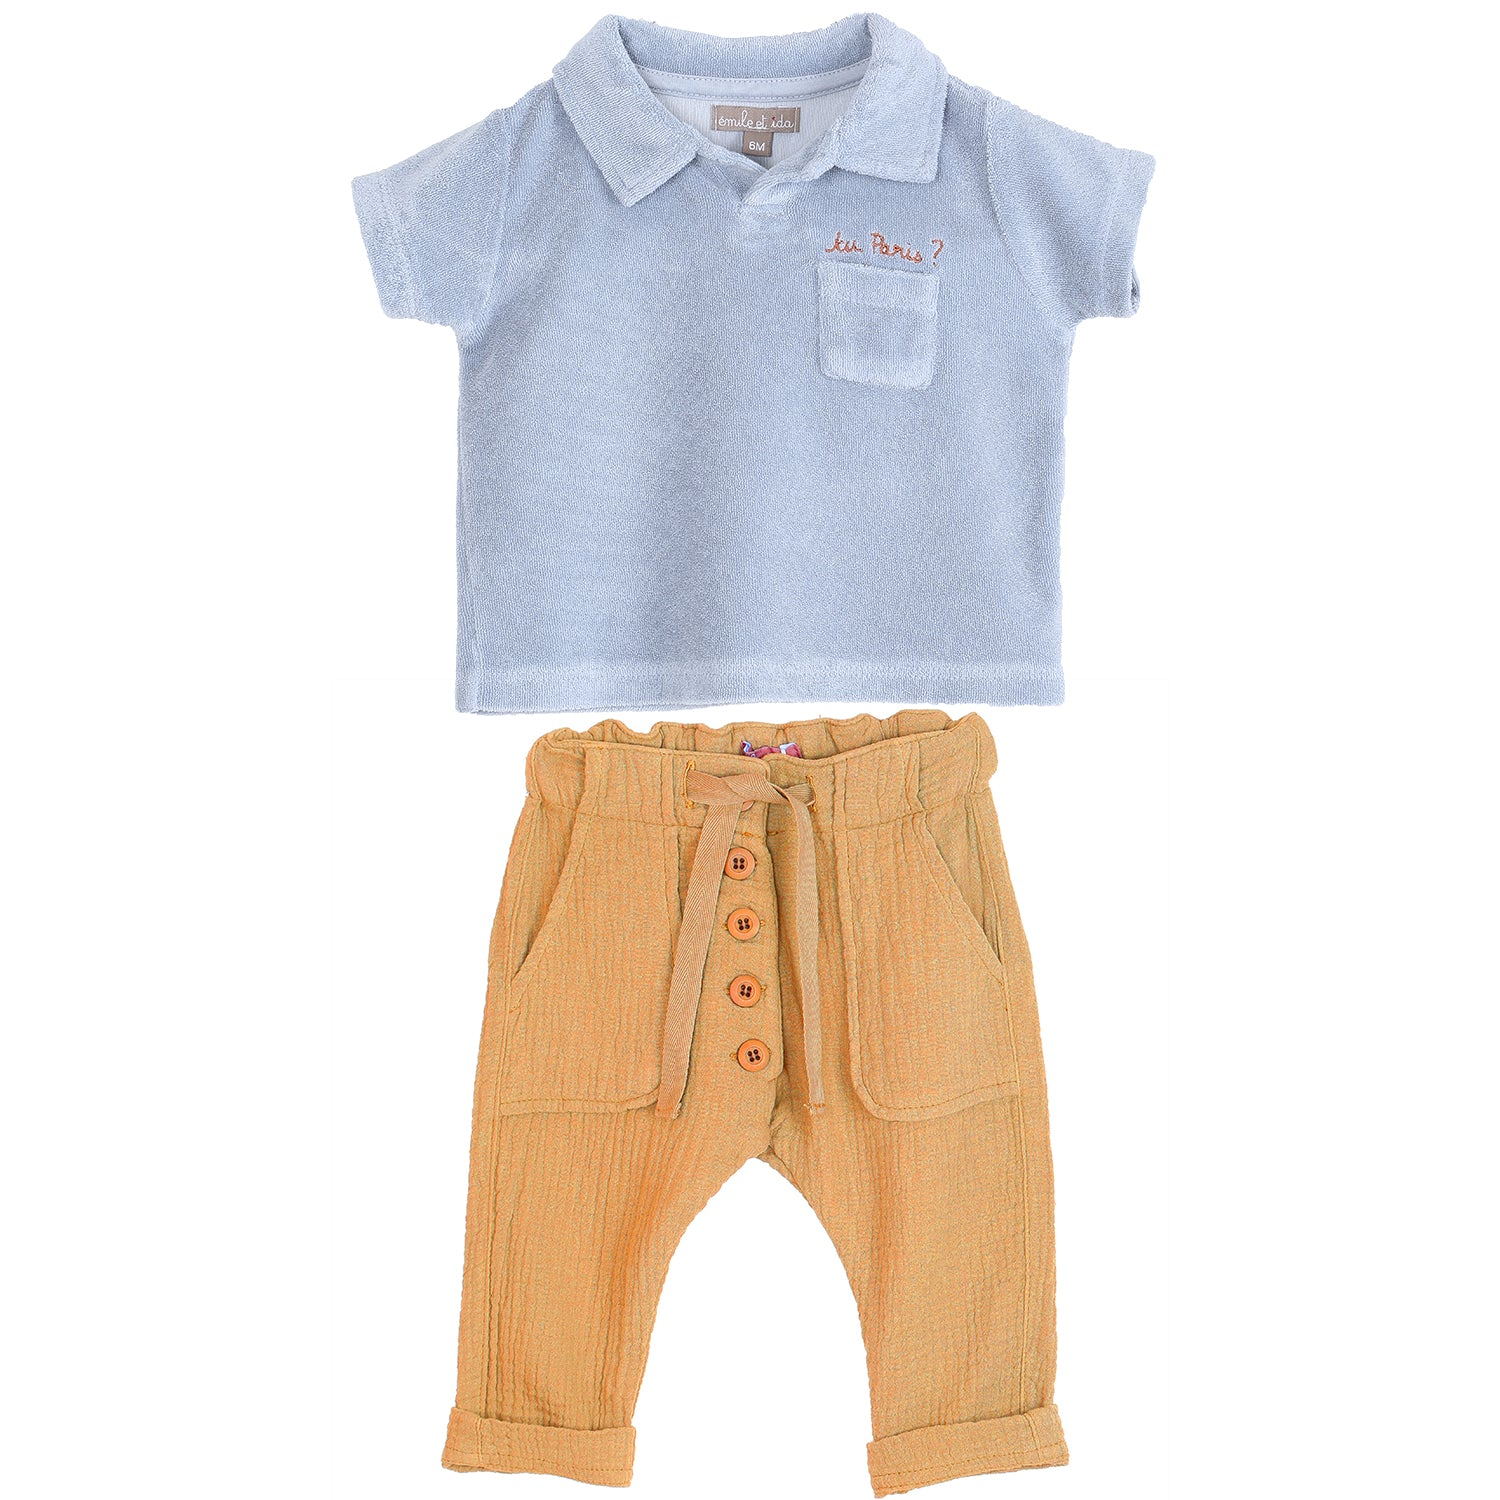 yoya, kids, baby, boys, emile et ida, casual, summer, terry cloth, slogan, polo shirt, creped cotton, button fly, drawstring, pants, outfit set